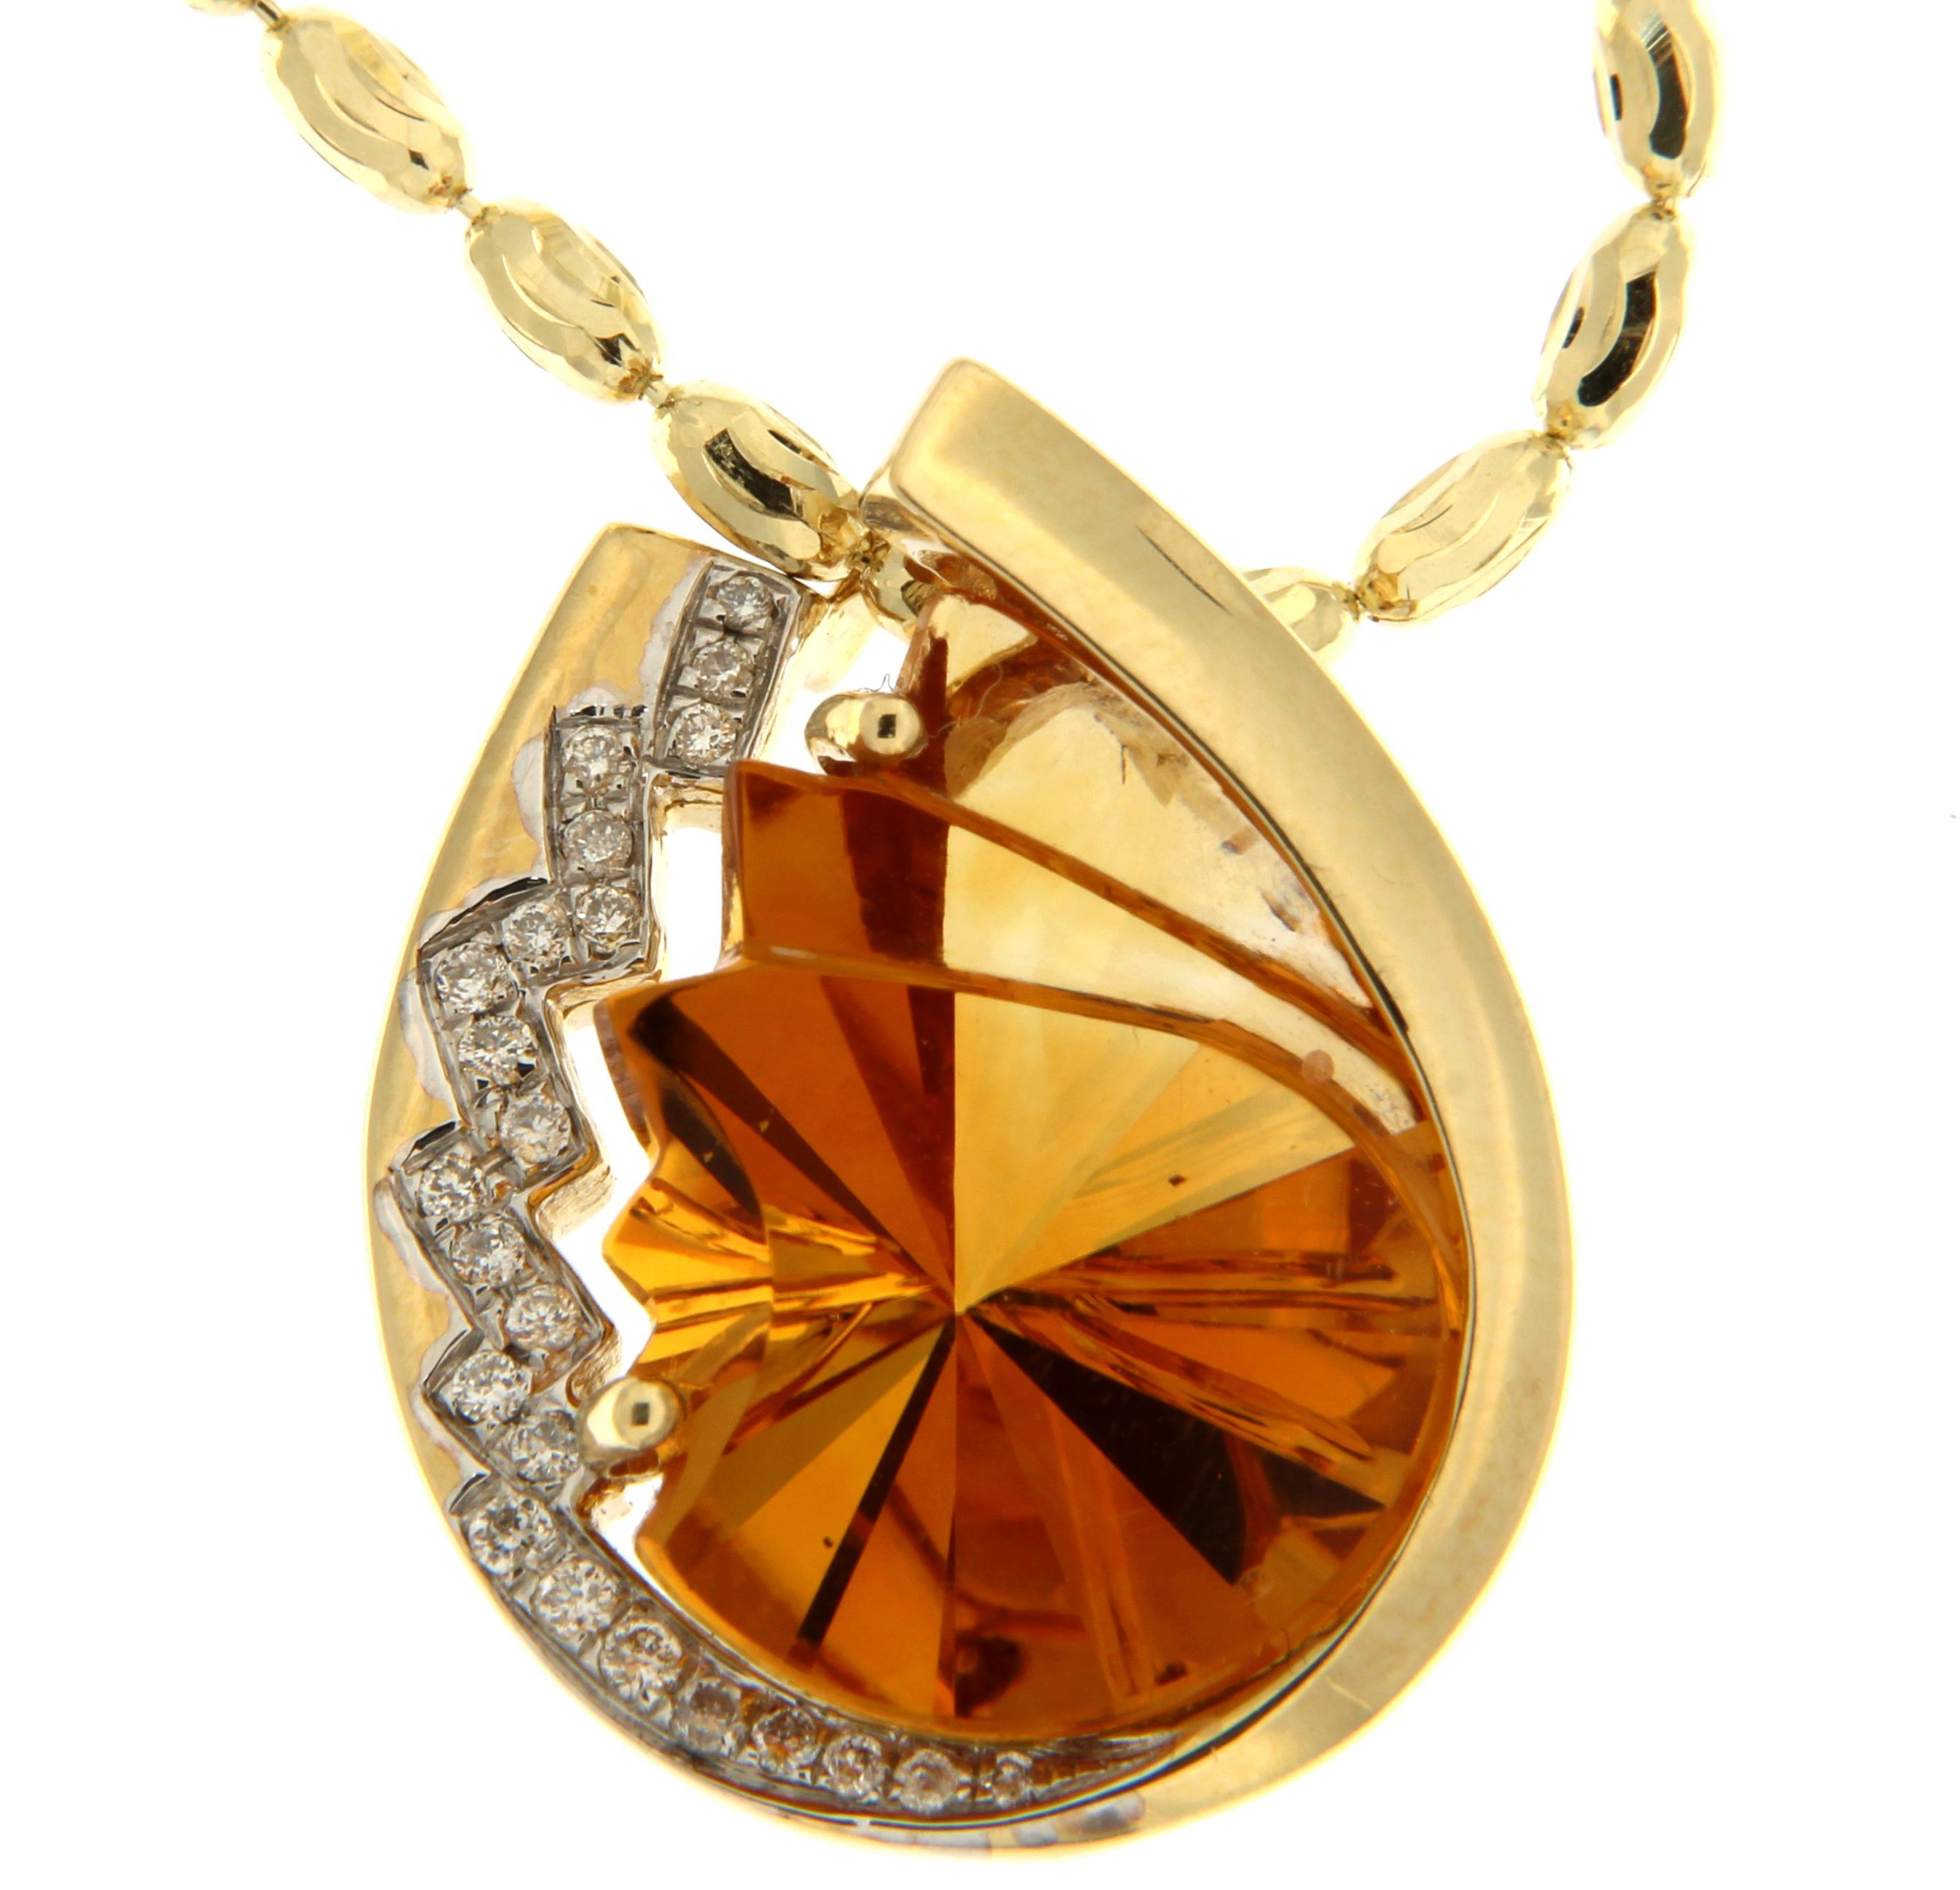 Citrine pendant set in yellow gold available at house of silva